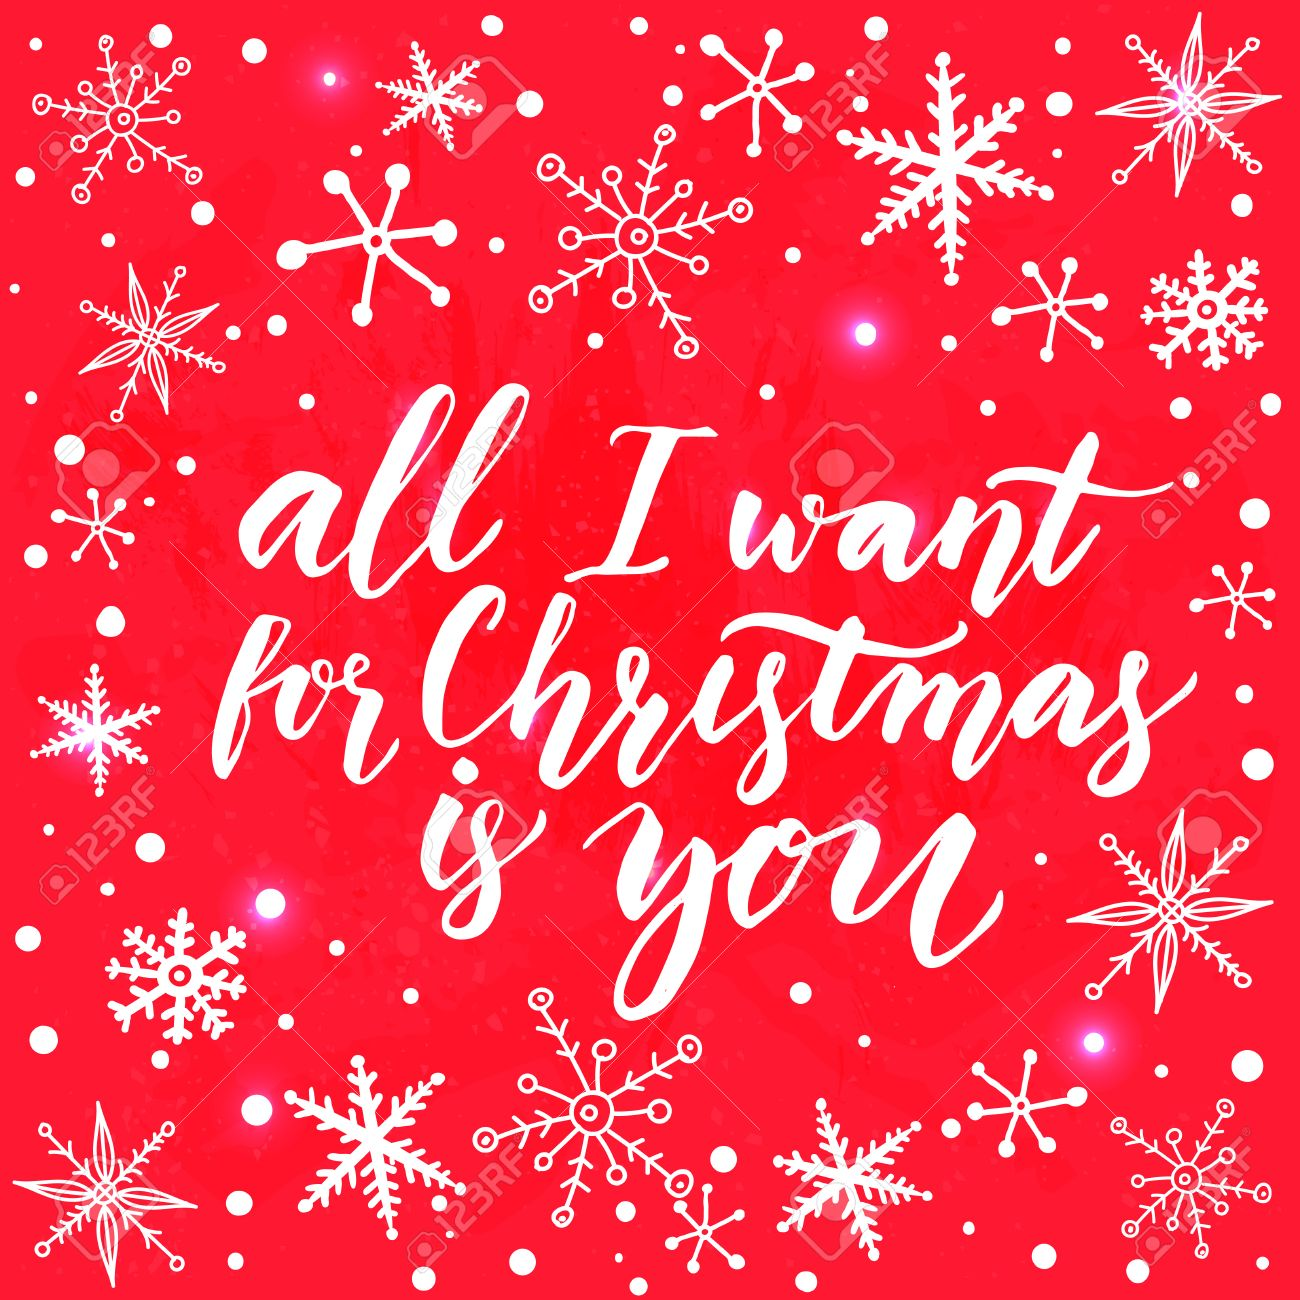 All I Want For Christmas Is You. Inspirational Quote For Christmas Cards  And Greetings.